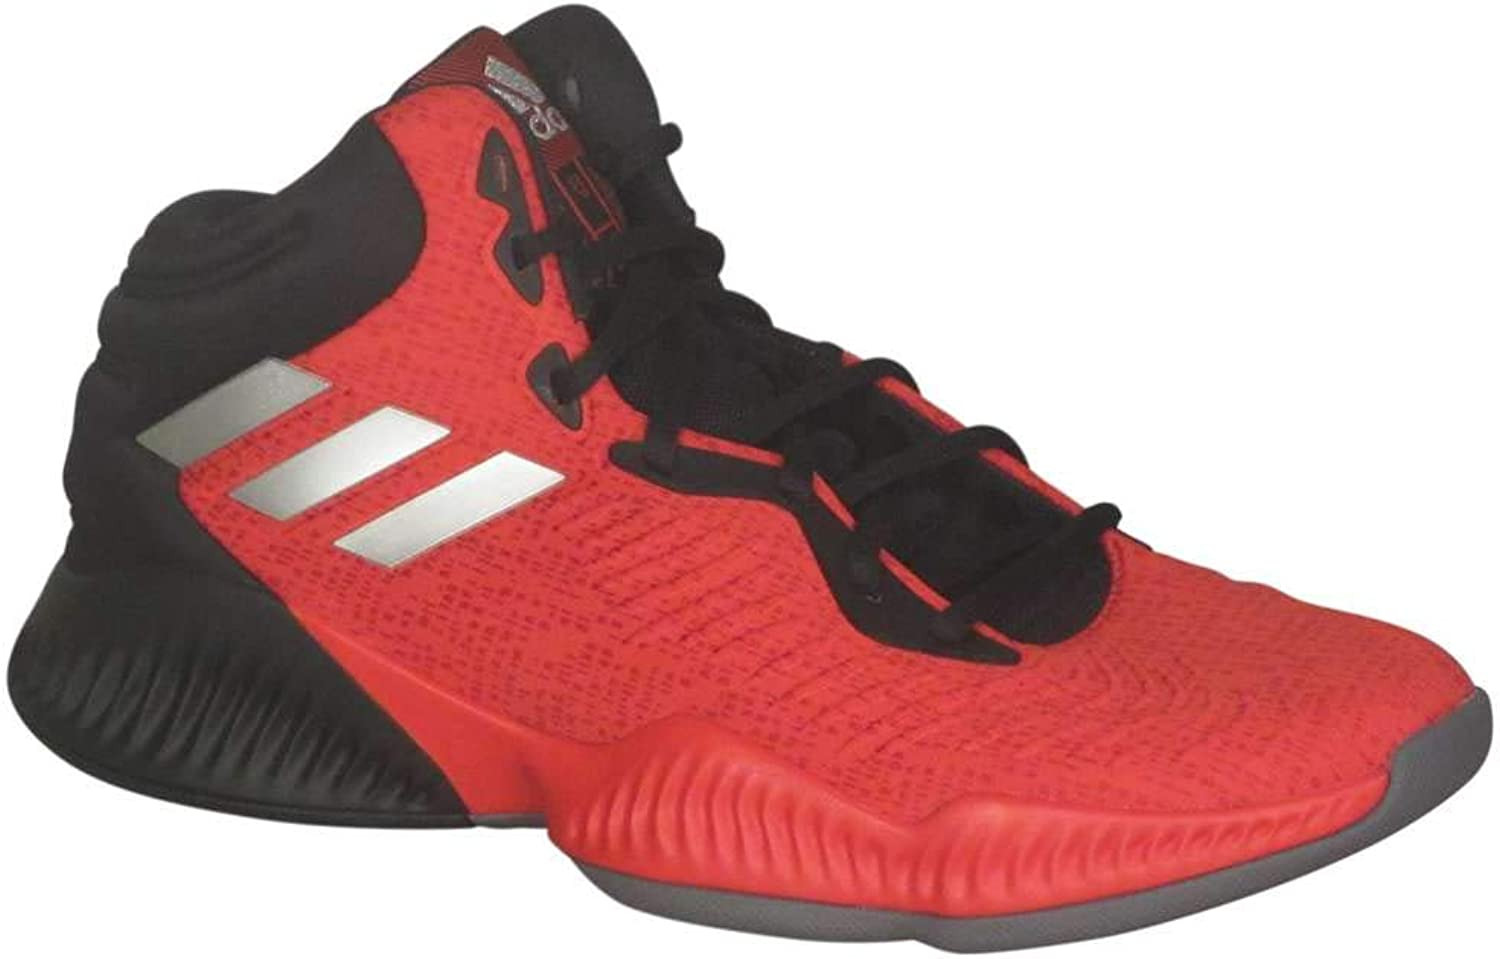 Adidas Mad Bounce 2018 shoes Men's Basketball